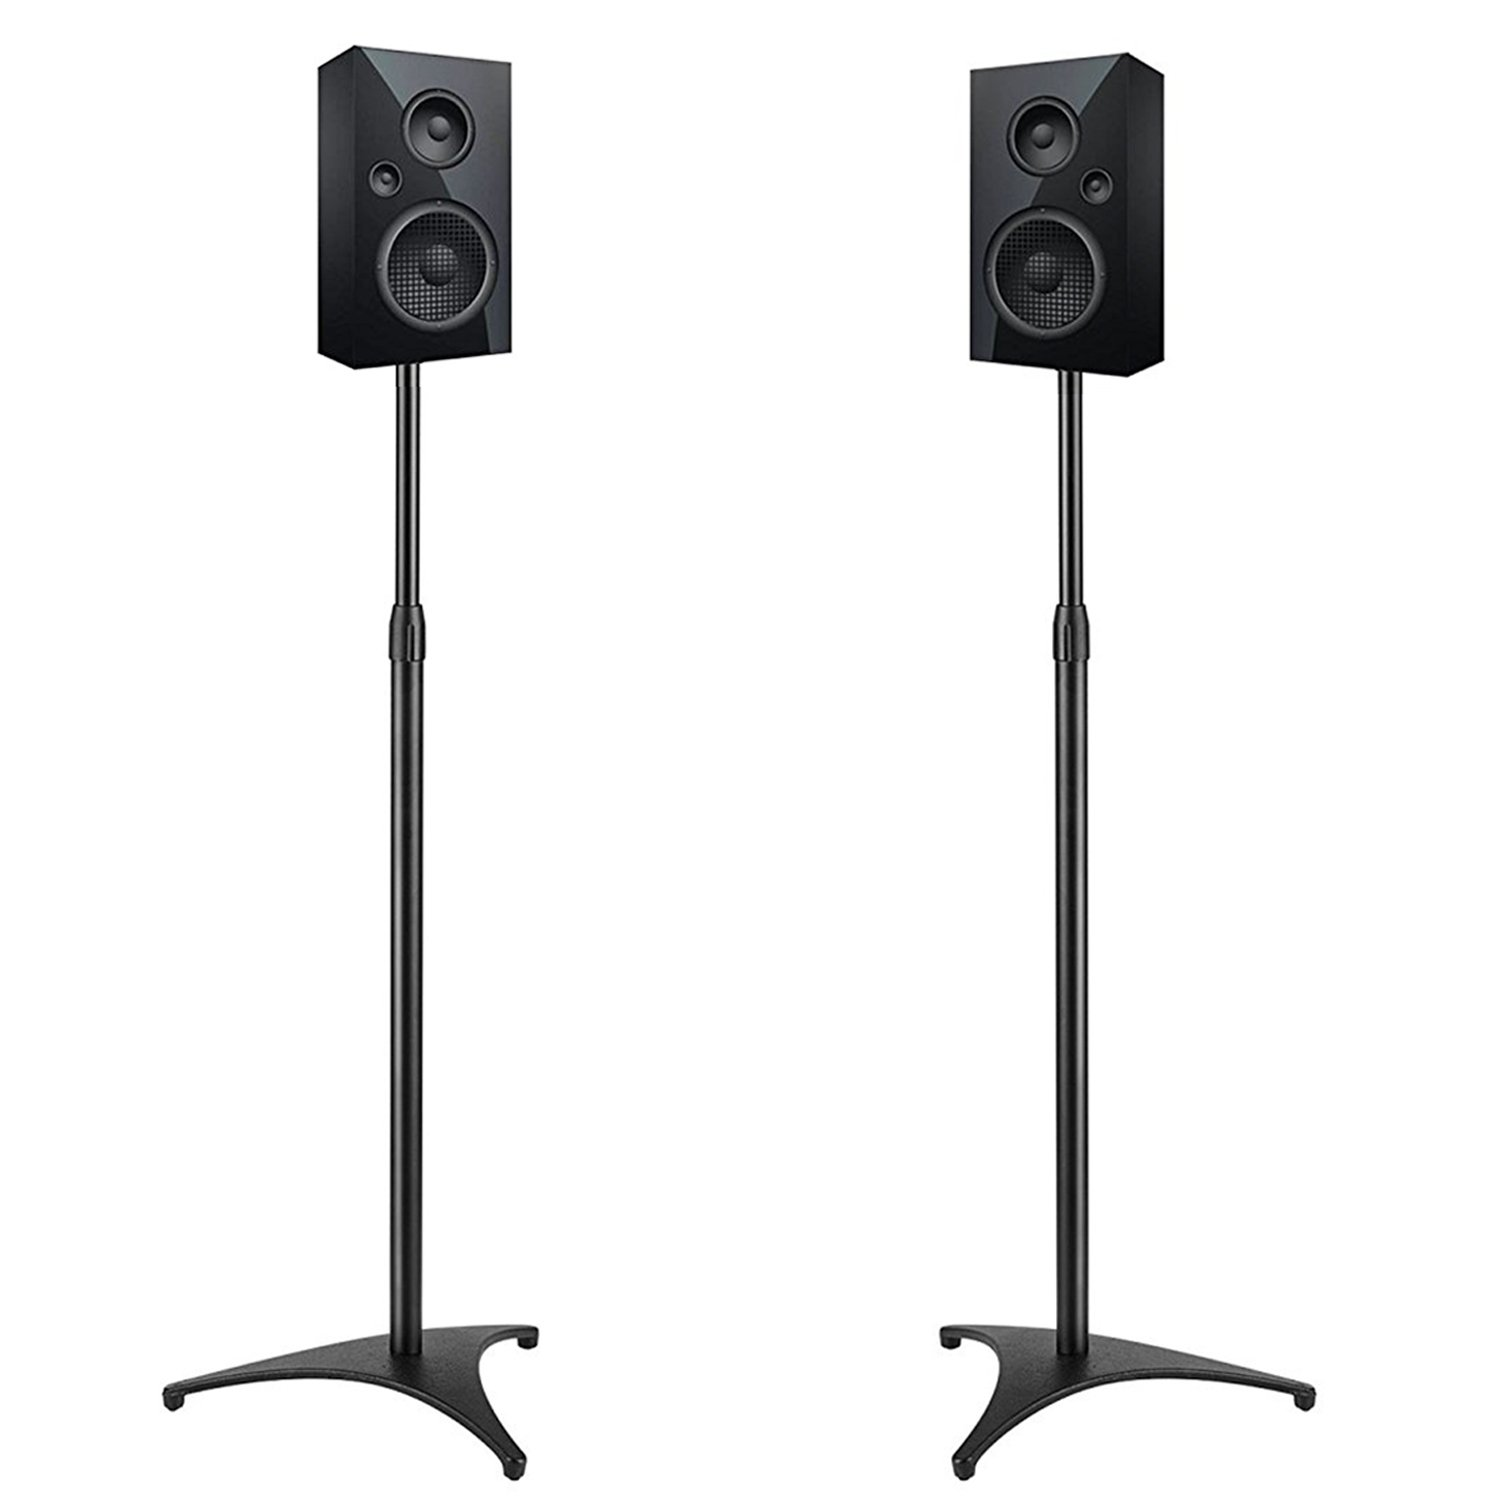 PERLESMITH Adjustable Height Speaker Stands-Extends 30-45 Inch-Hold Satellite & Small Bookshelf Speakers Weight up to 8lbs-Heavy Duty Floor Stands for Surround Sound-1 Pair (Model: PSSS1) by PERLESMITH